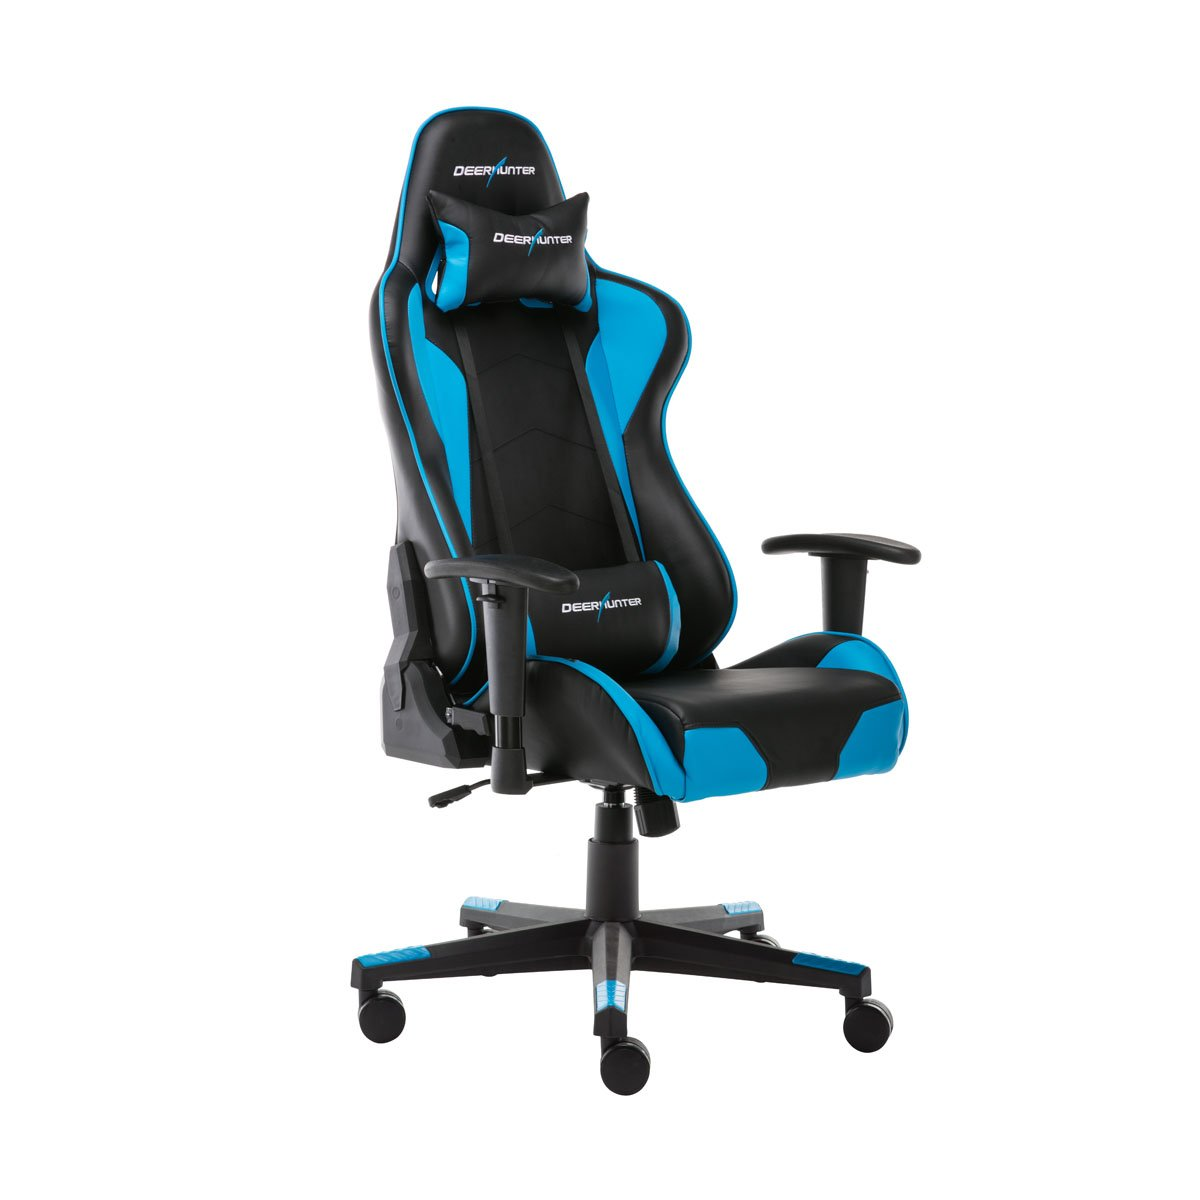 DEERHUNTER Gaming Chair, Swivel Leather Office Chair, High Back Ergonomic Racing Chair, Adjustable Computer Desk Chair with Lumbar Support and Headrest (Blue) by Deerhunter